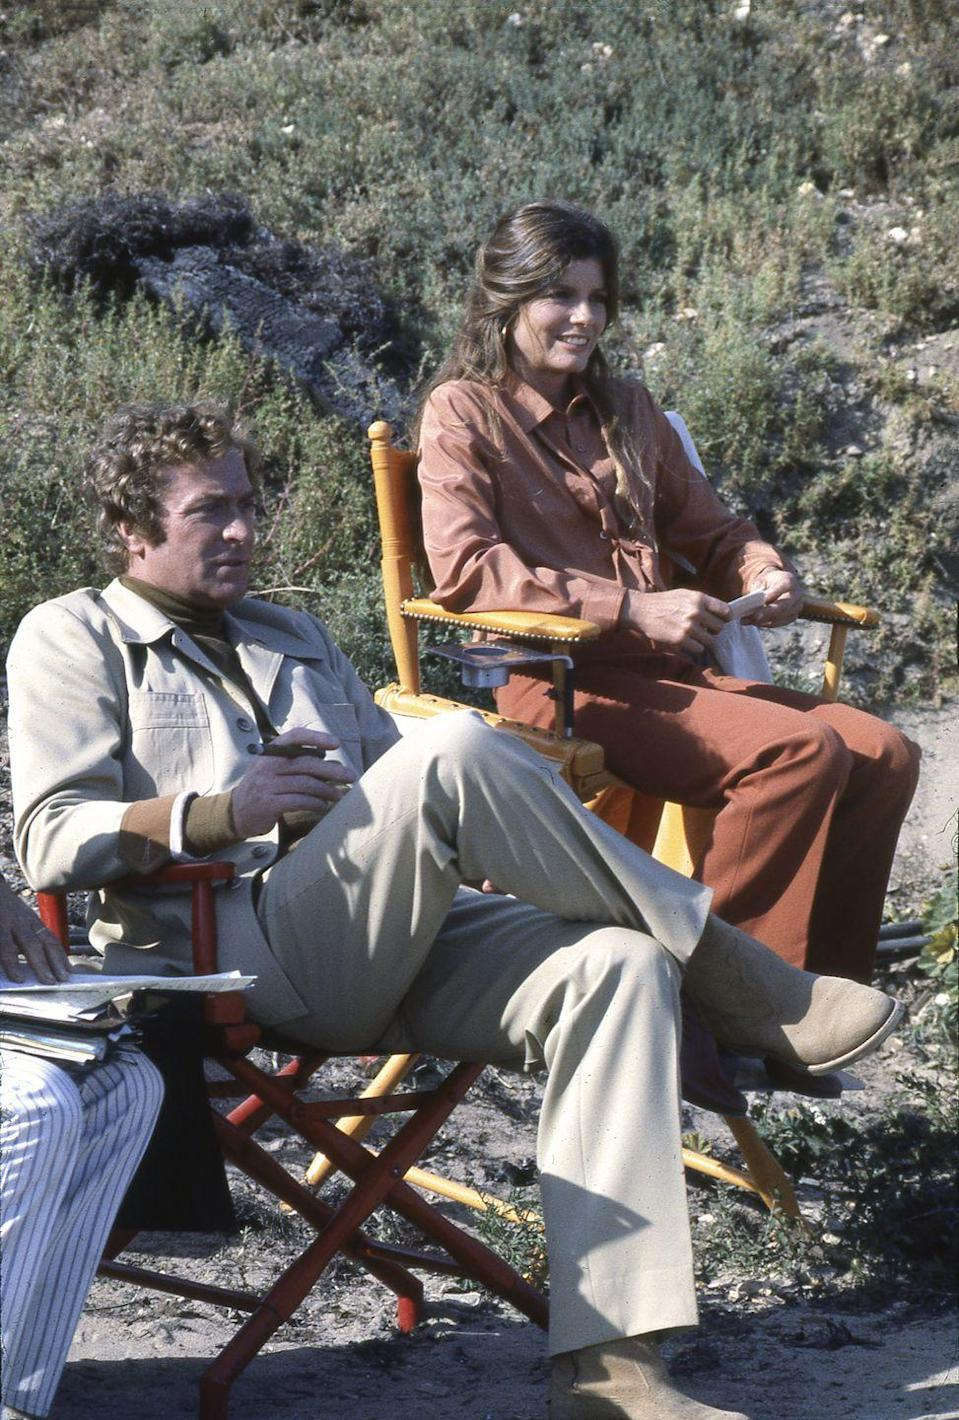 <p>Actress Katharine Ross sits on the sidelines with costar Michael Caine as they film the disaster movie <em>The Swarm</em> on location in 1977. </p>